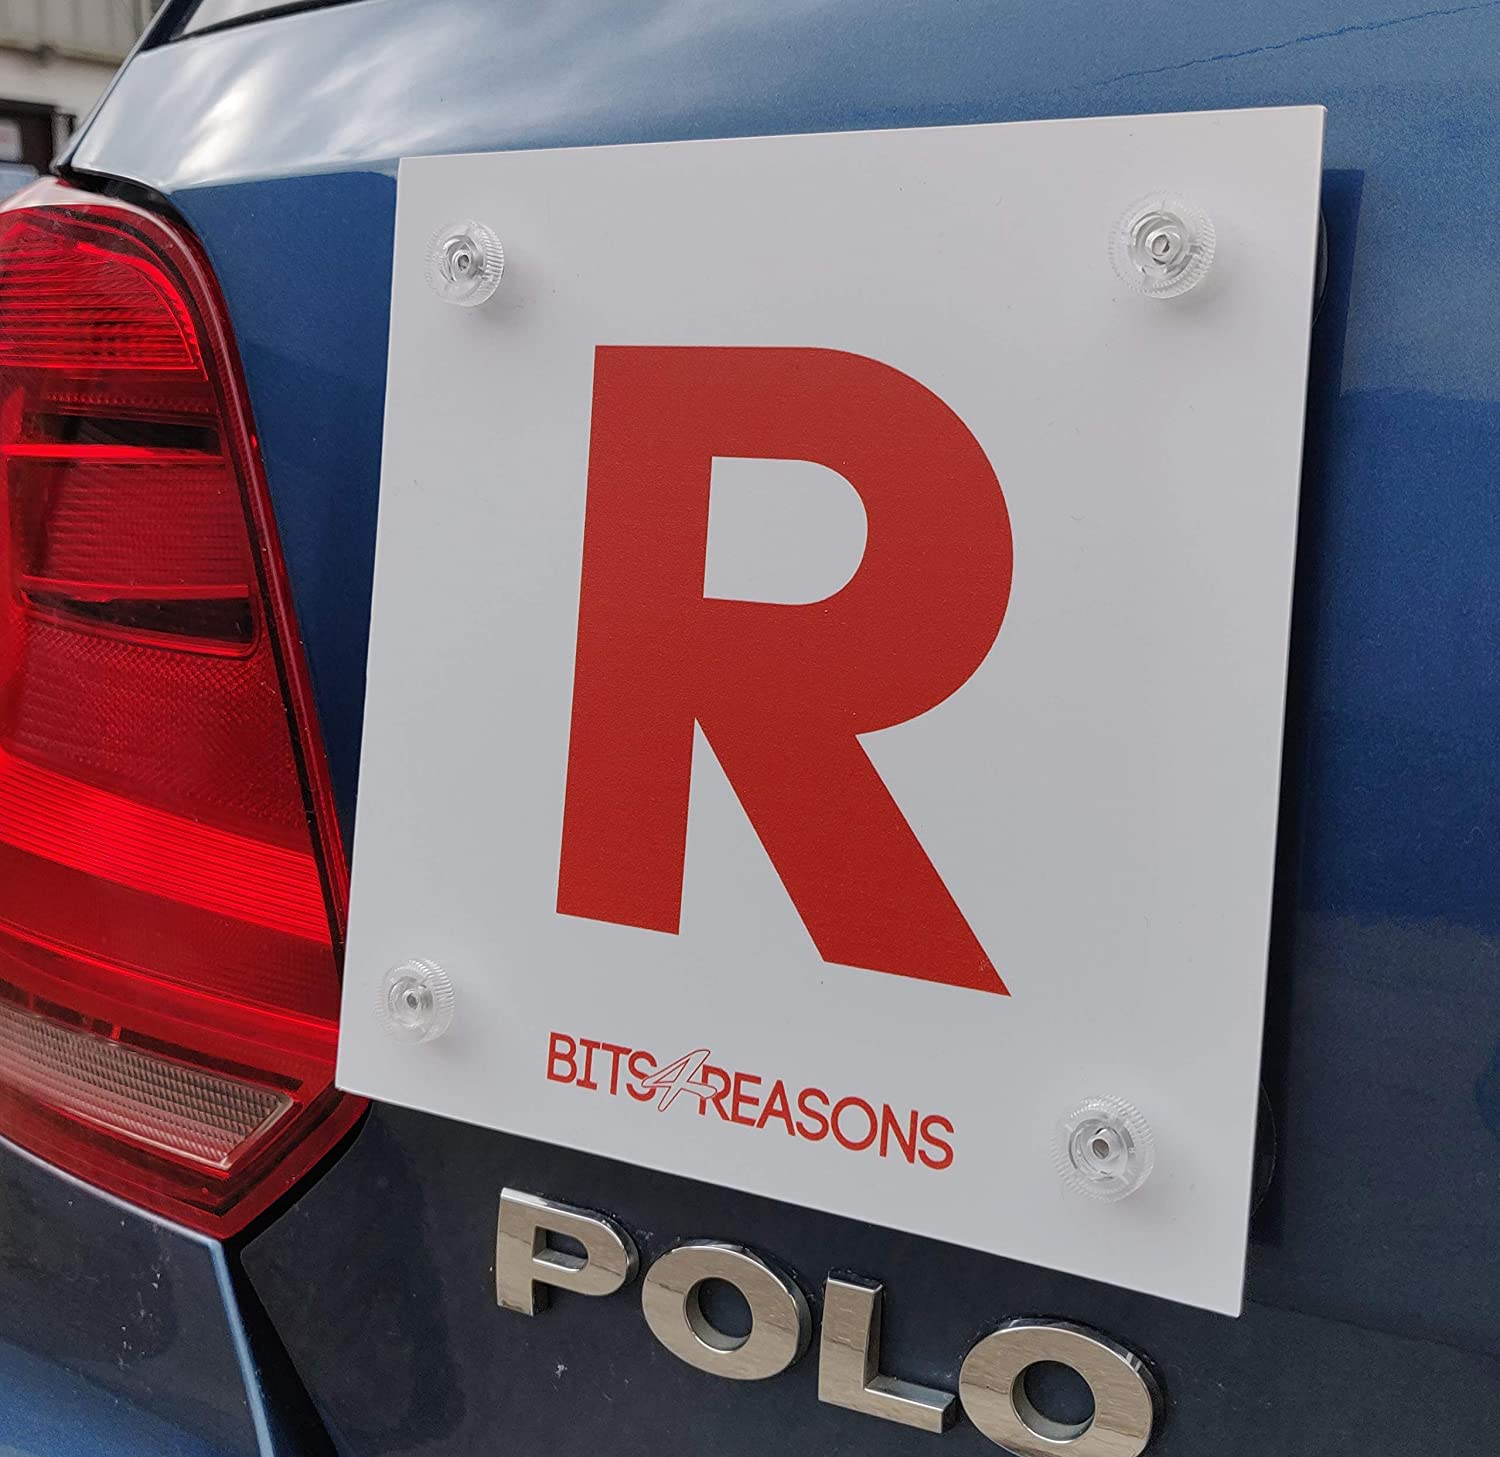 BITS4REASONS PROFESSIONAL GRADE L AND R PLATE FOR ALL SURFACES INCLUDING GLASS AND PLASTIC MOULDED BODYWORK SINGLE PLATE RESTRICTED